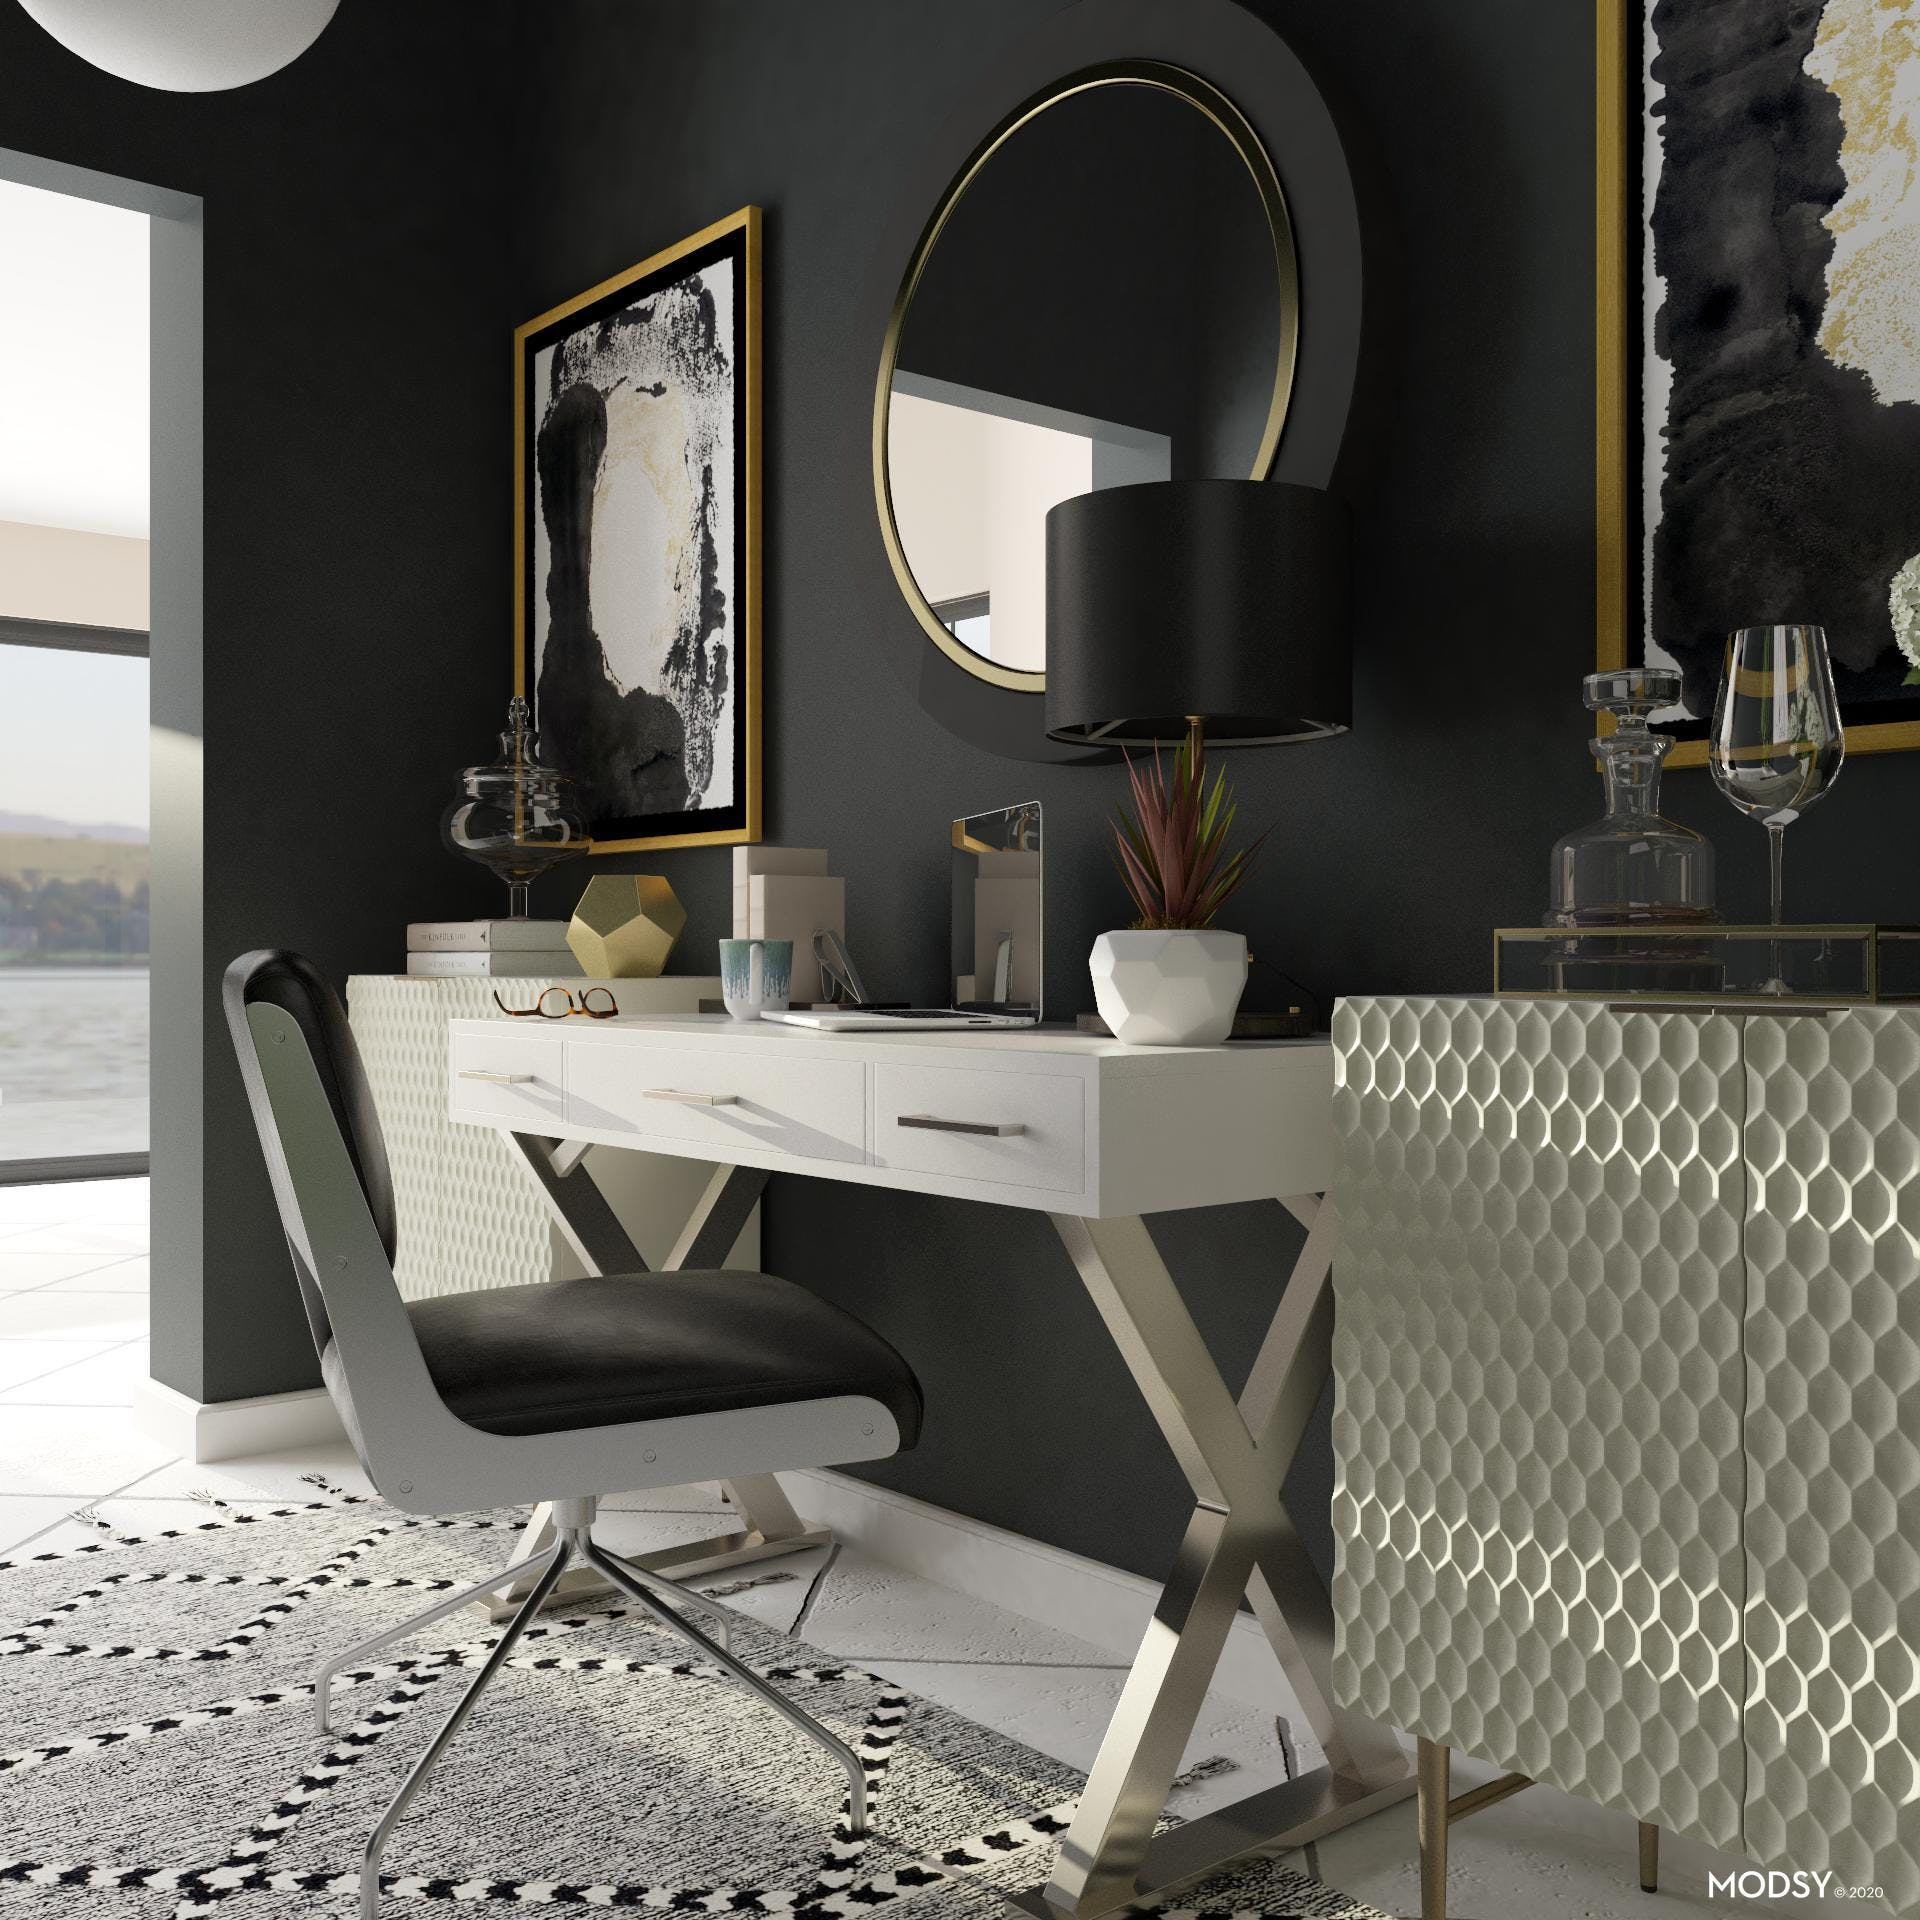 Patterns and Textures In Glam Black and White Office